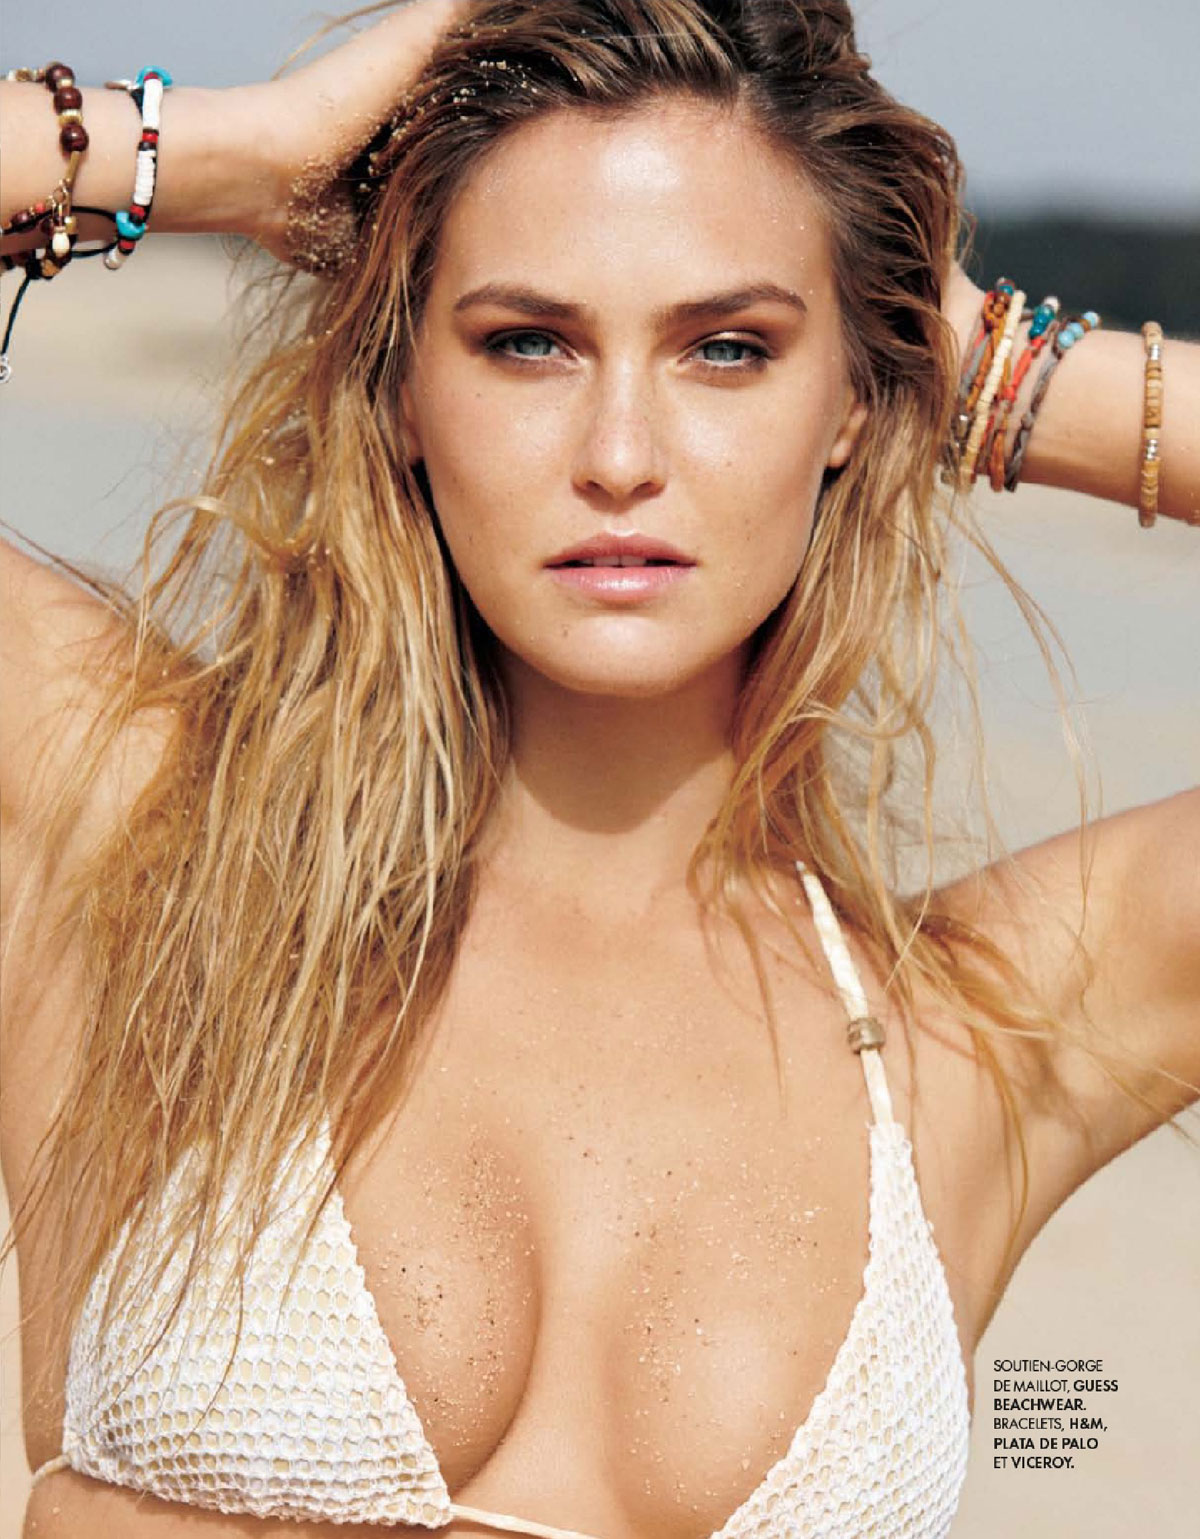 BAR REFAELI in Elle Magazine, France July 2012 Issue